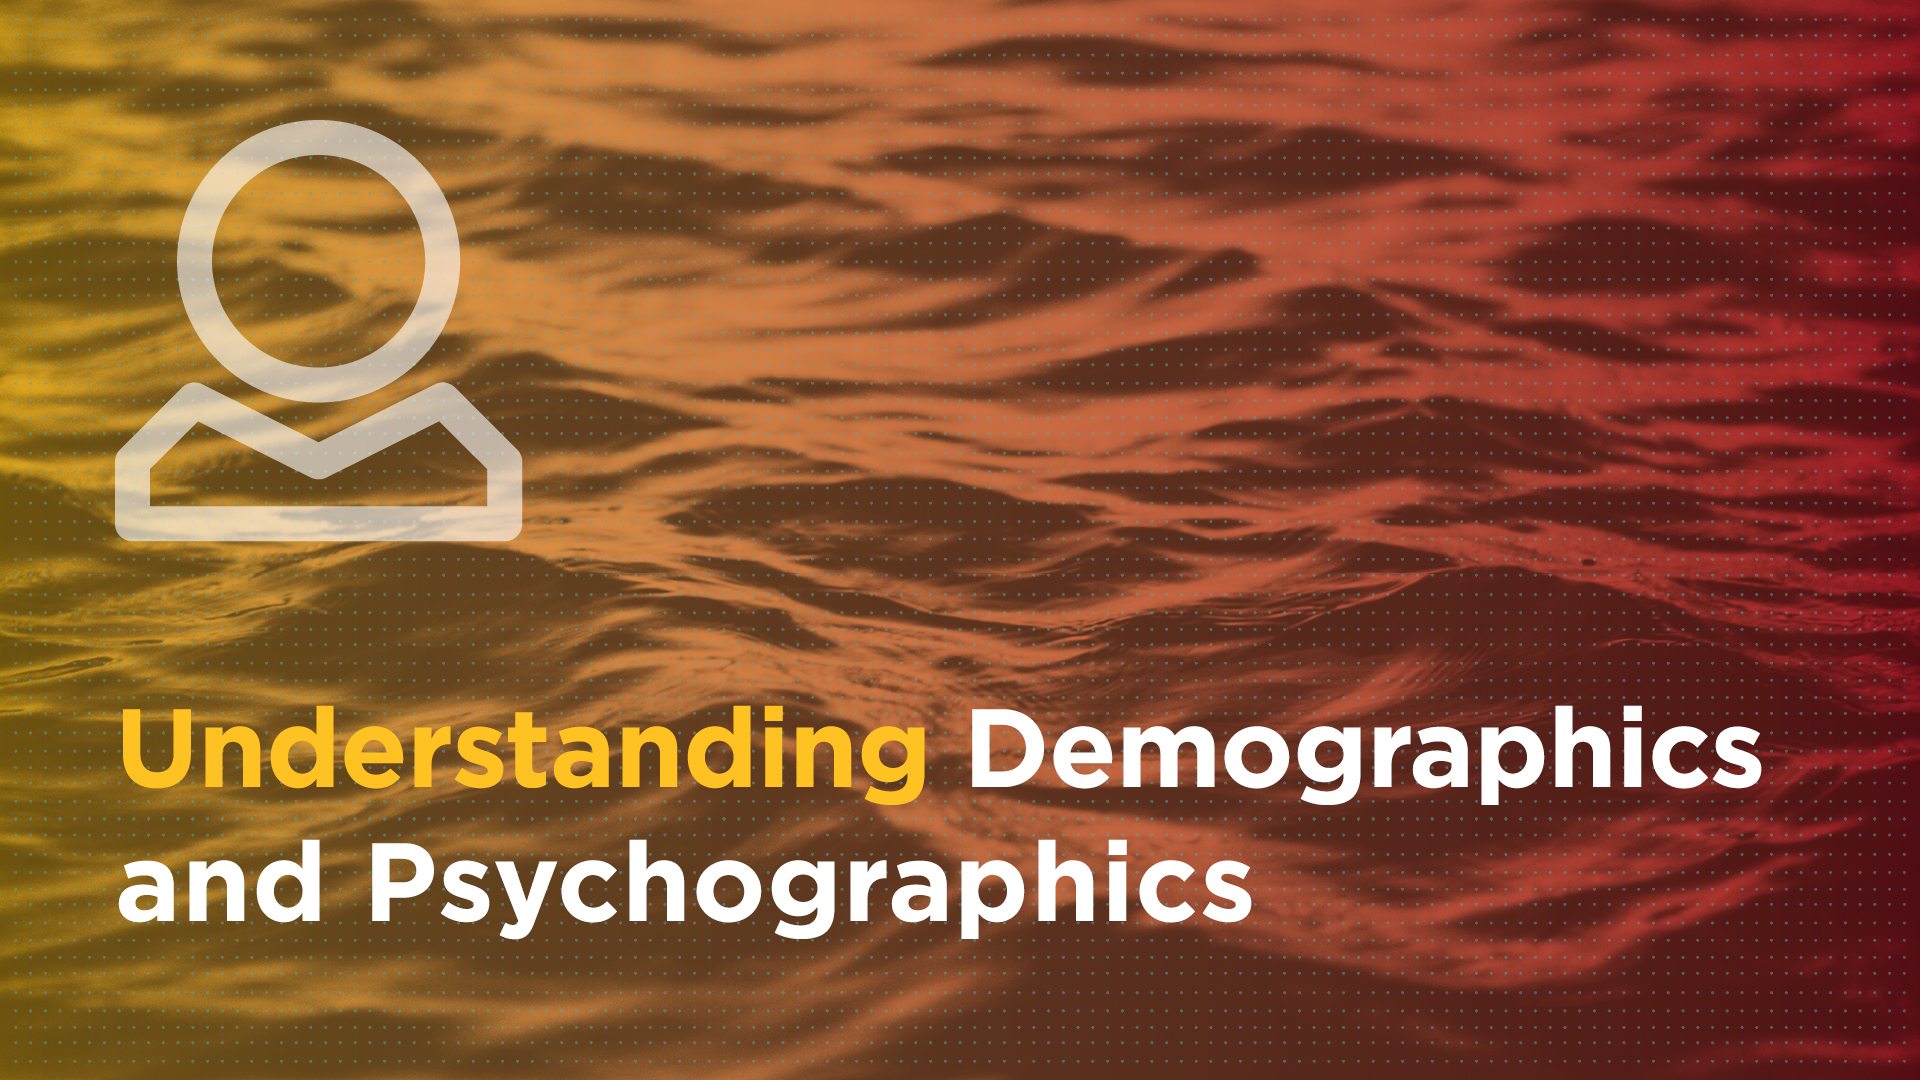 Understanding Demographics and Psychographics Featured Image